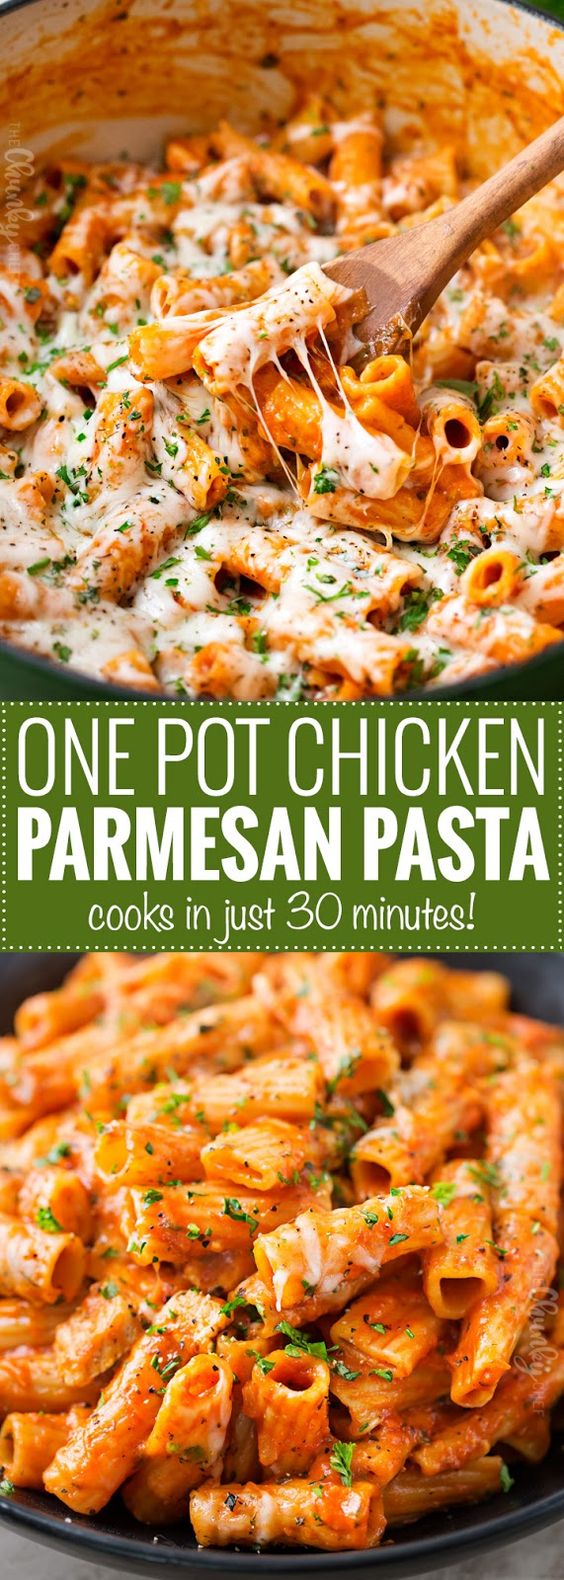 All the great chicken parmesan flavors, combined in one easy one pot pasta dish that's ready in 30 minutes! Less dishes, but a meal with maximum flavor!